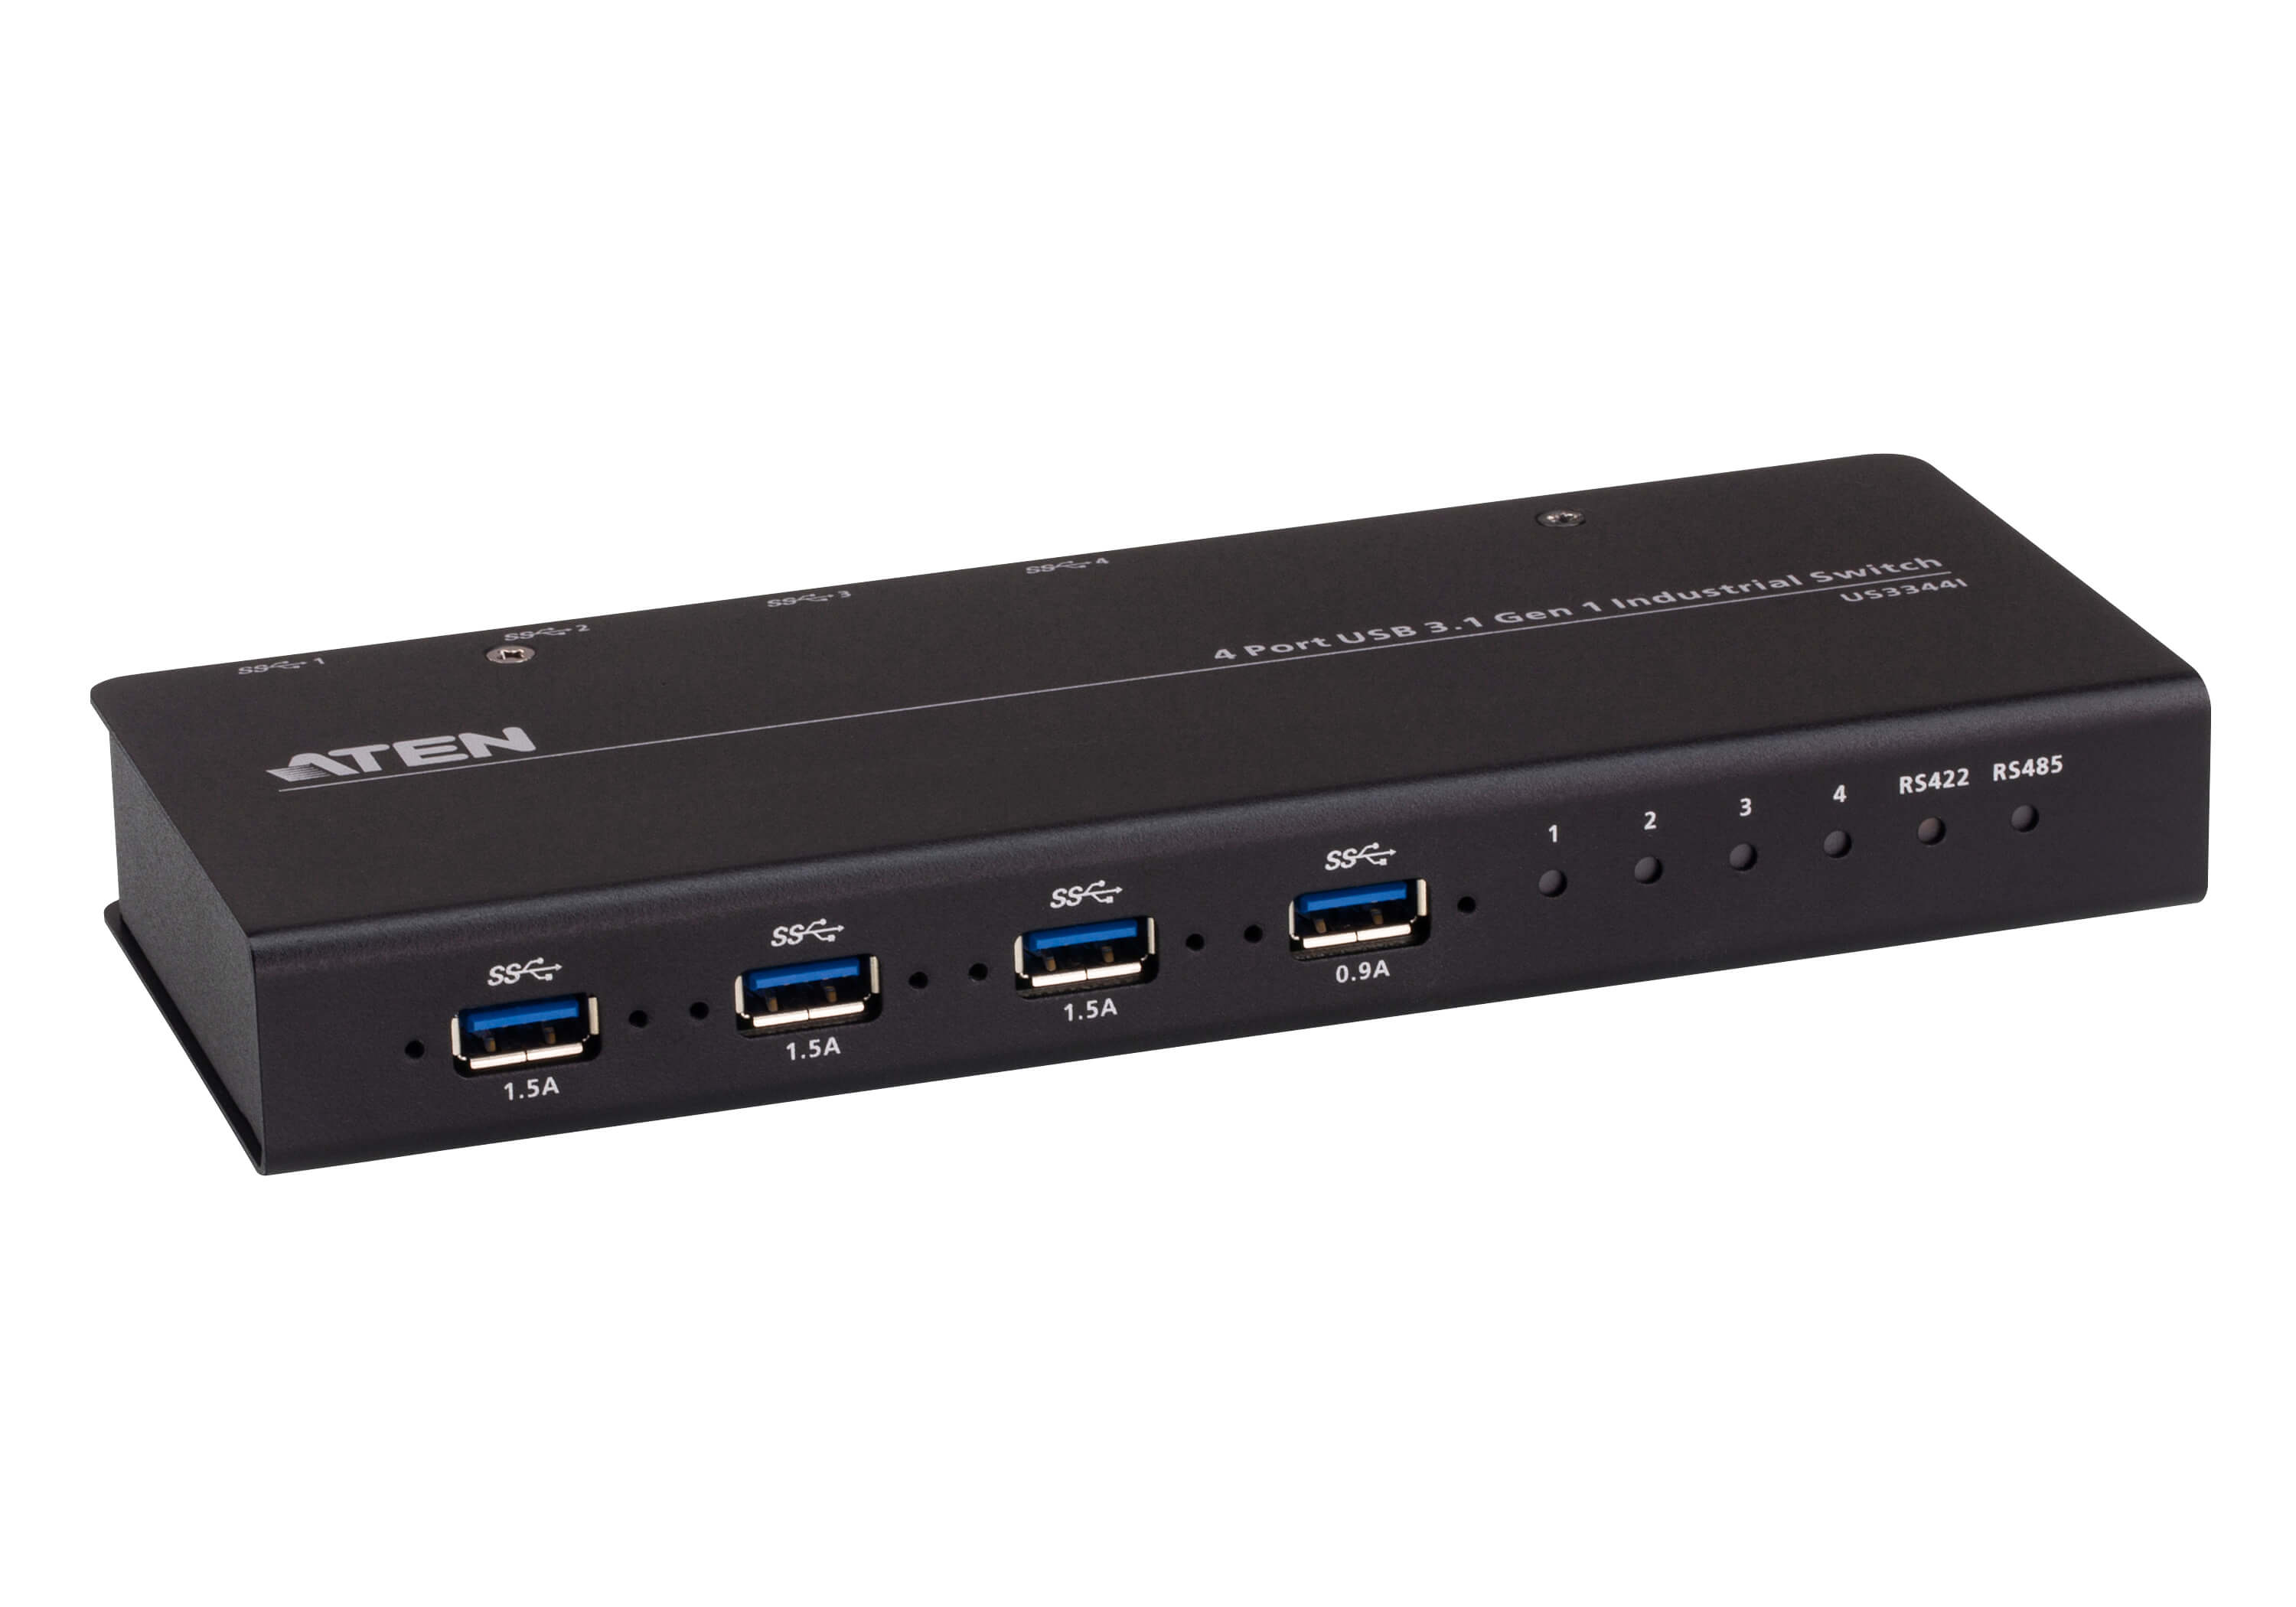 4 x 4 USB 3.2 Gen 1 Industrie Hub Switch-4